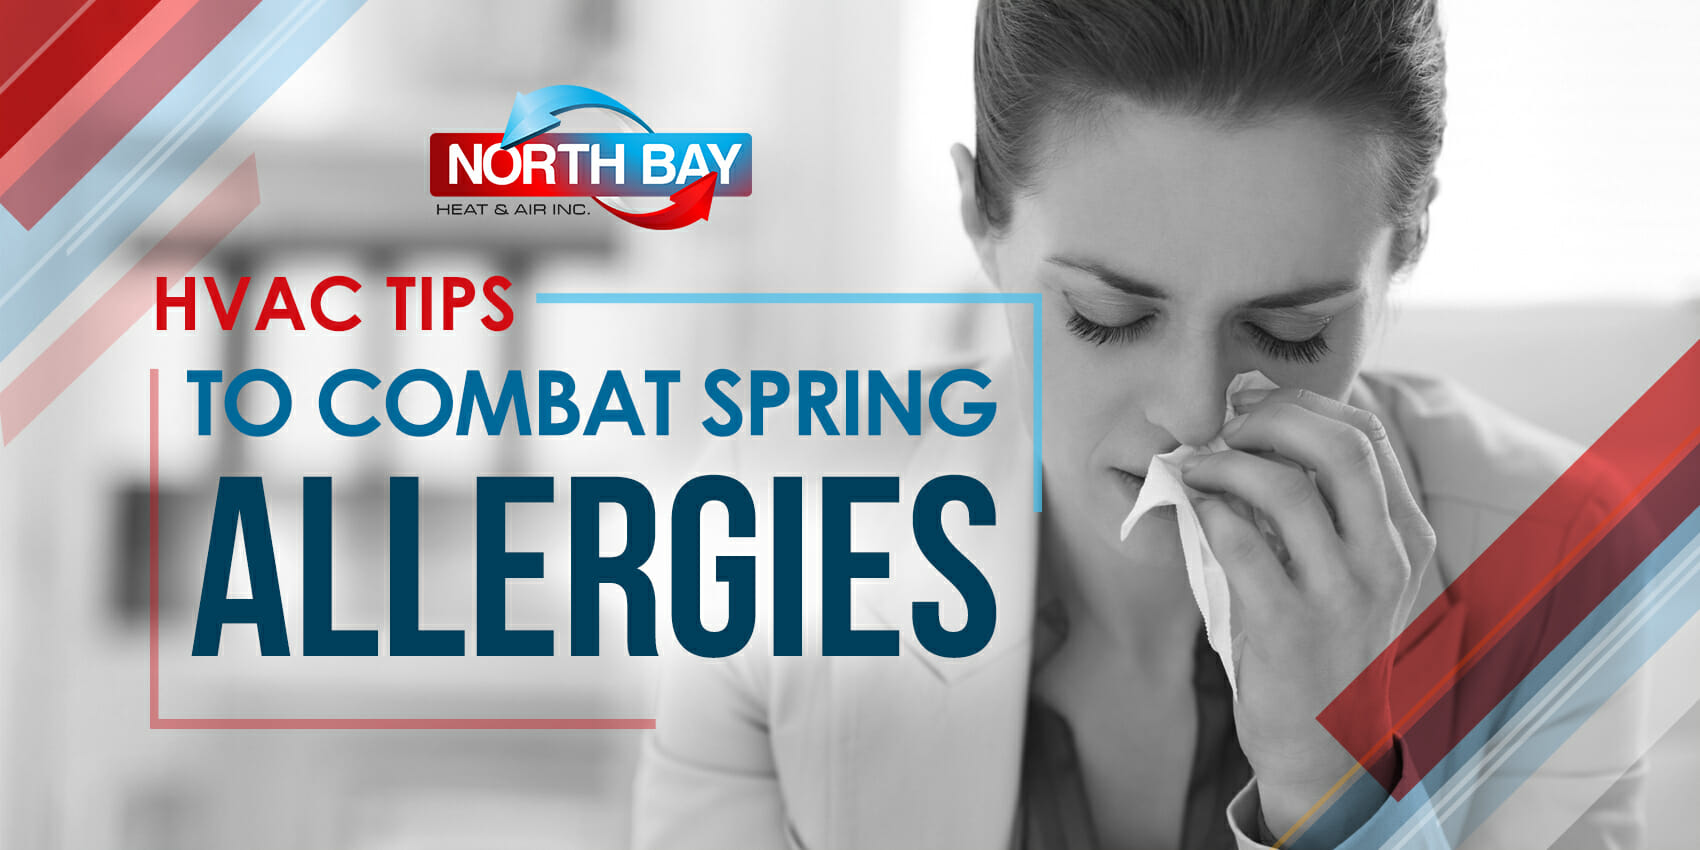 HVAC Tips To Combat Spring Allergies